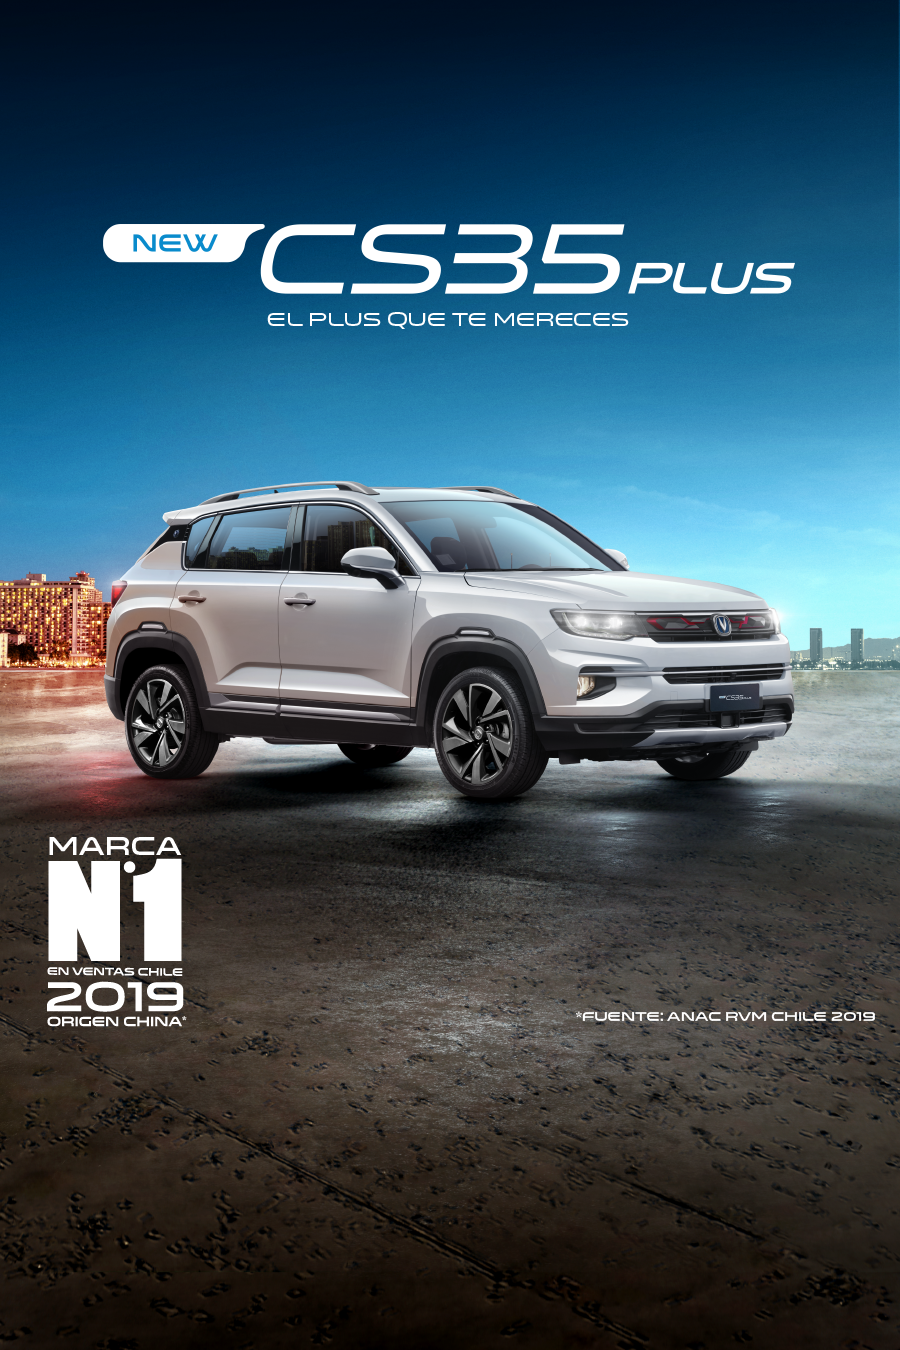 BannerWEB_Changan_900x1350_CS35 PLUS